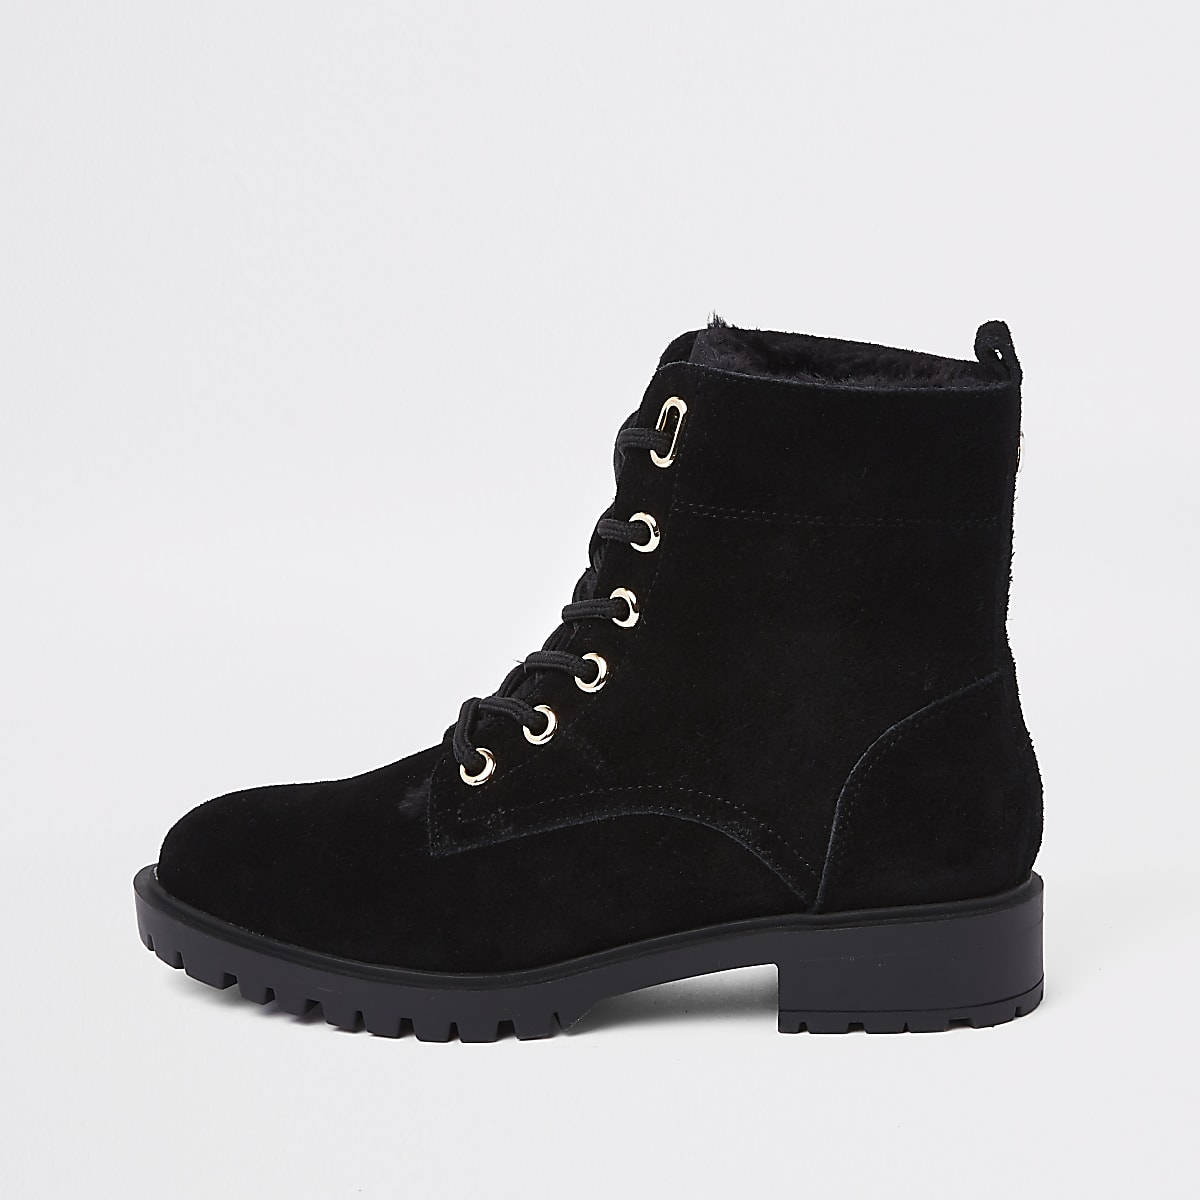 Black faux fur lined lace-up hiking boots